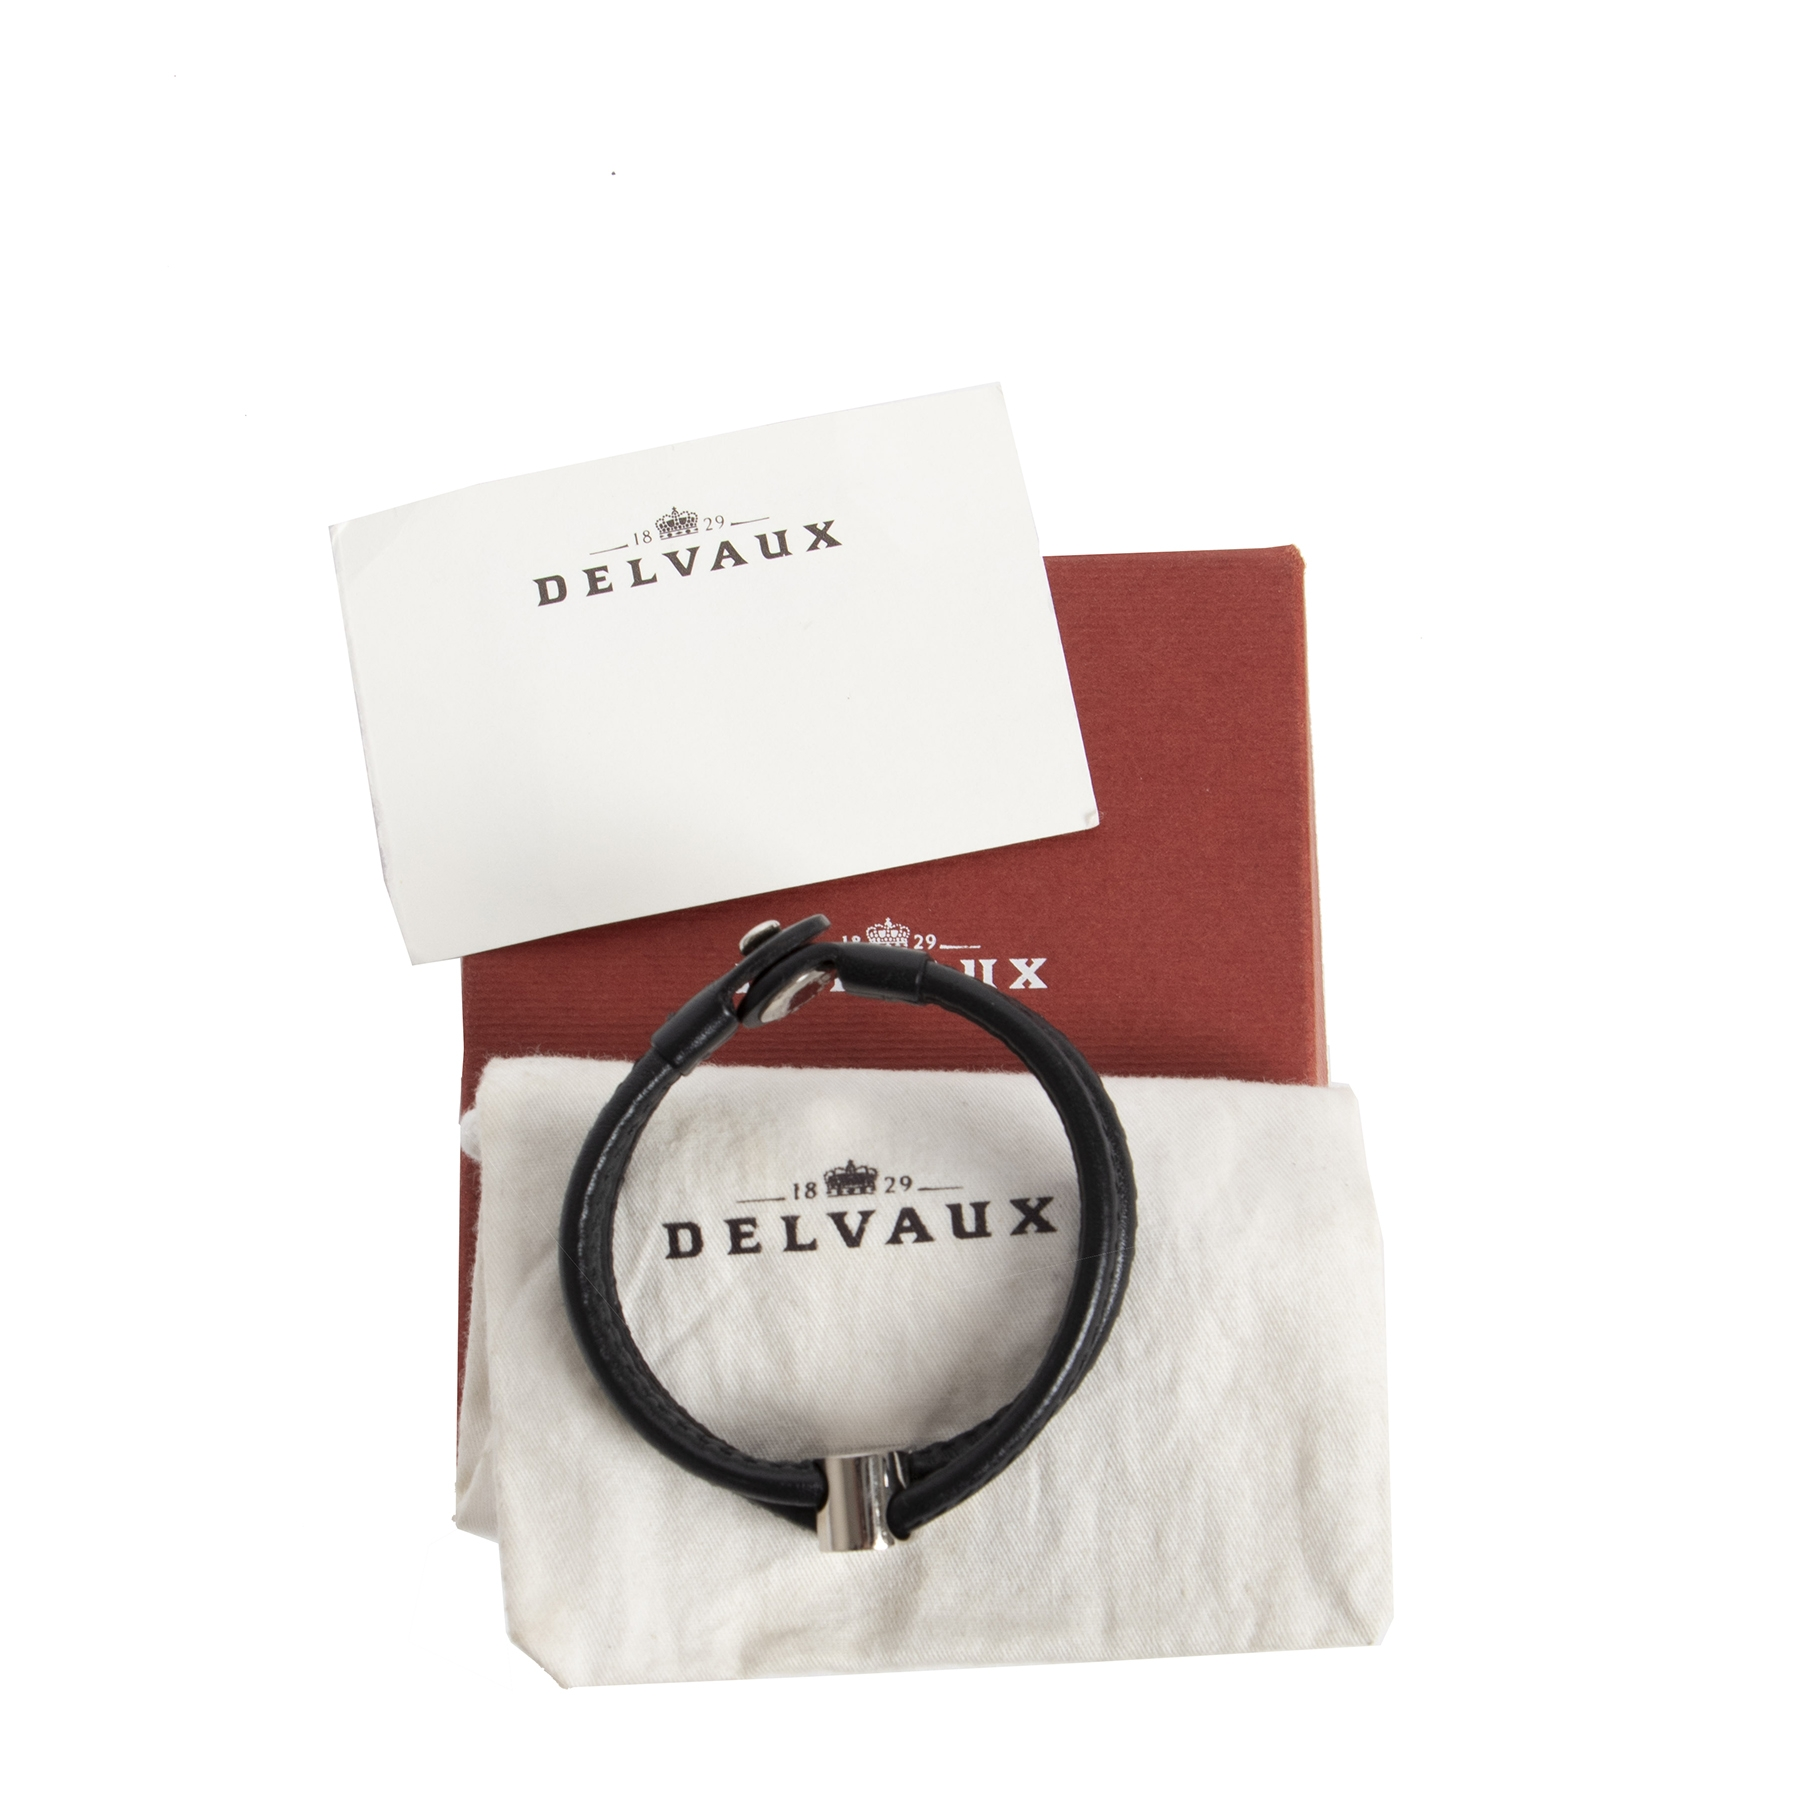 Authentic secondhand Delvaux Black Leather Bracelet Silver D designer accessories luxury vintage webshop designer brands fashion online shopping